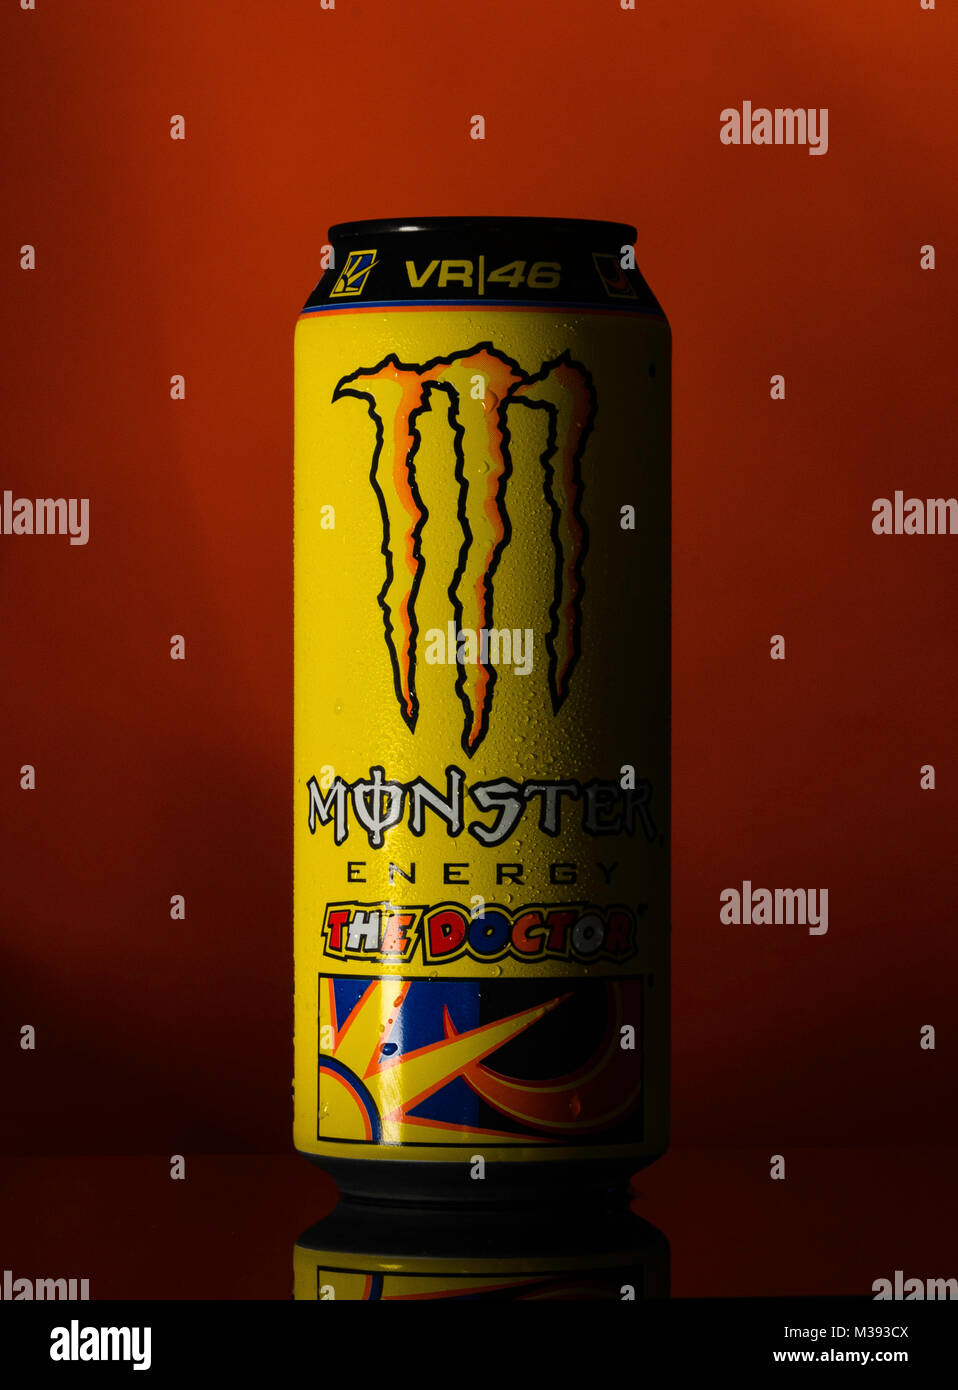 Monster Energy Drink Valentino Rossi Limited Edition - Stock Image